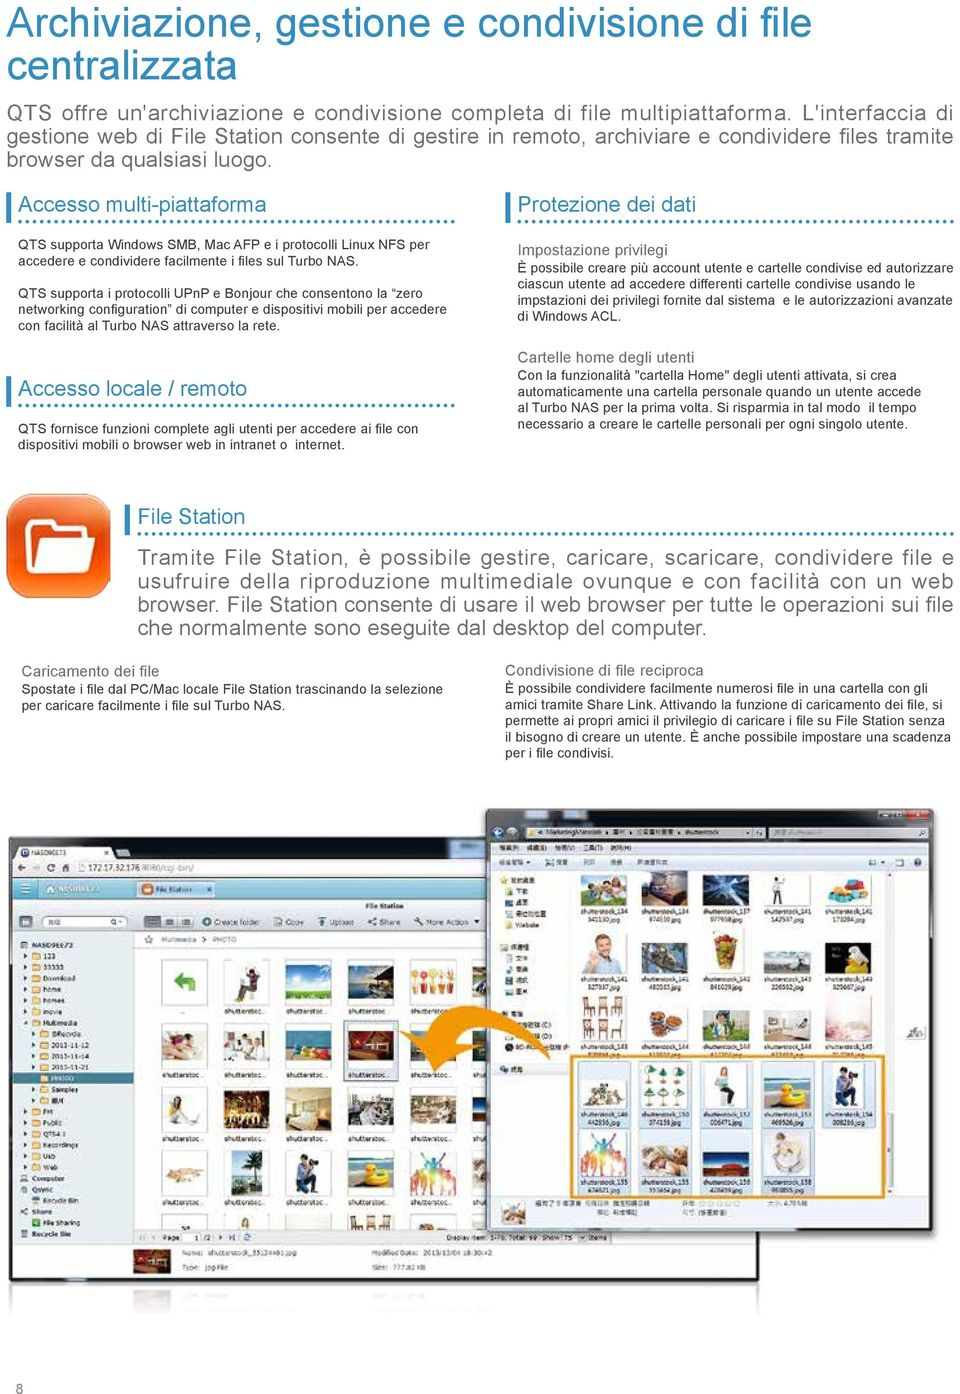 Accesso multi-piattaforma QTS supporta Windows SMB, Mac AFP e i protocolli Linux NFS per accedere e condividere facilmente i files sul Turbo NAS.